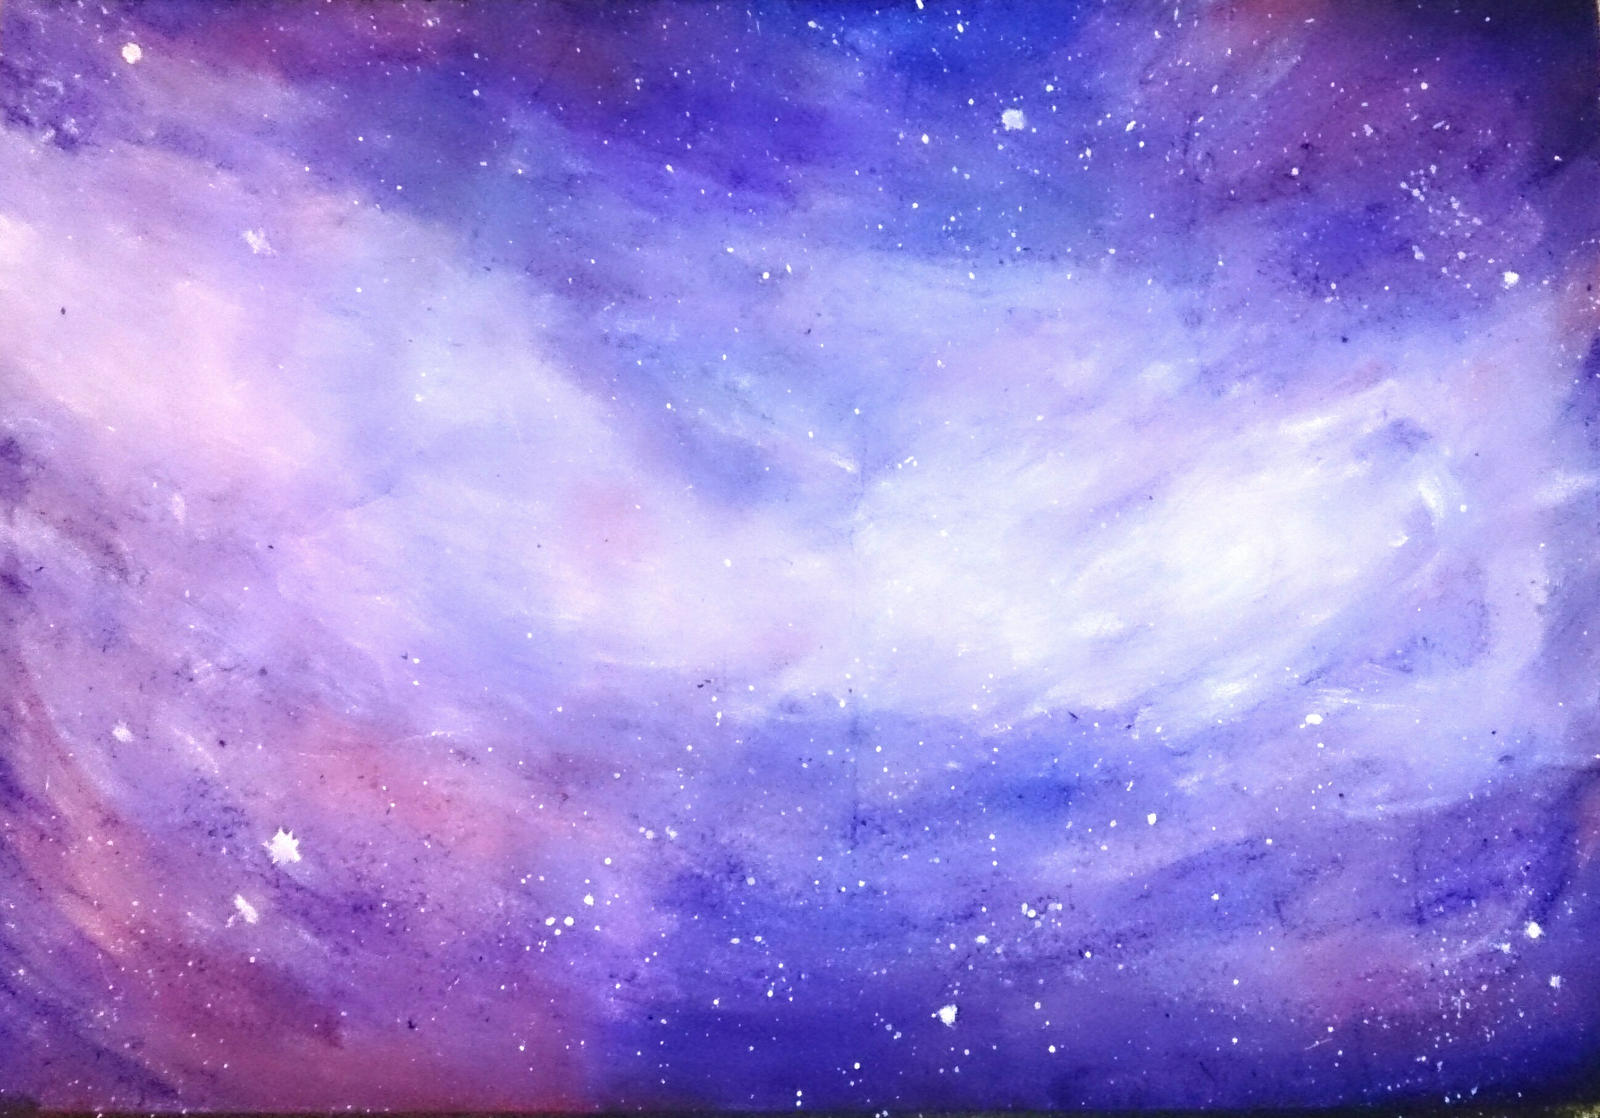 Stars + space paint background by AniaBuckle on DeviantArt